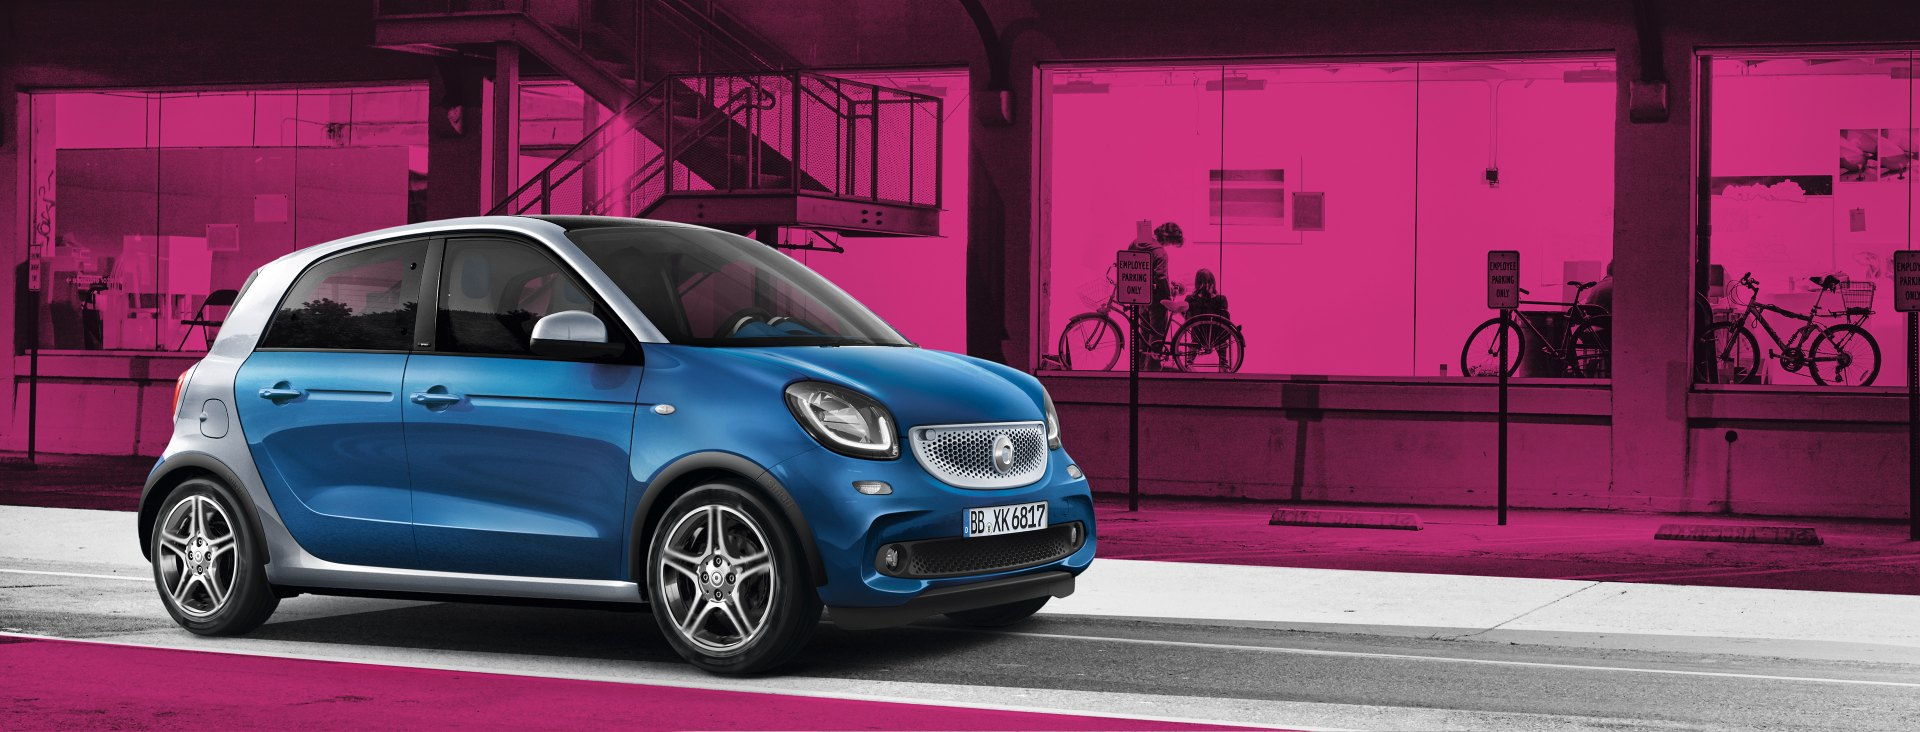 smart forfour an ideal city car with four seats. Black Bedroom Furniture Sets. Home Design Ideas